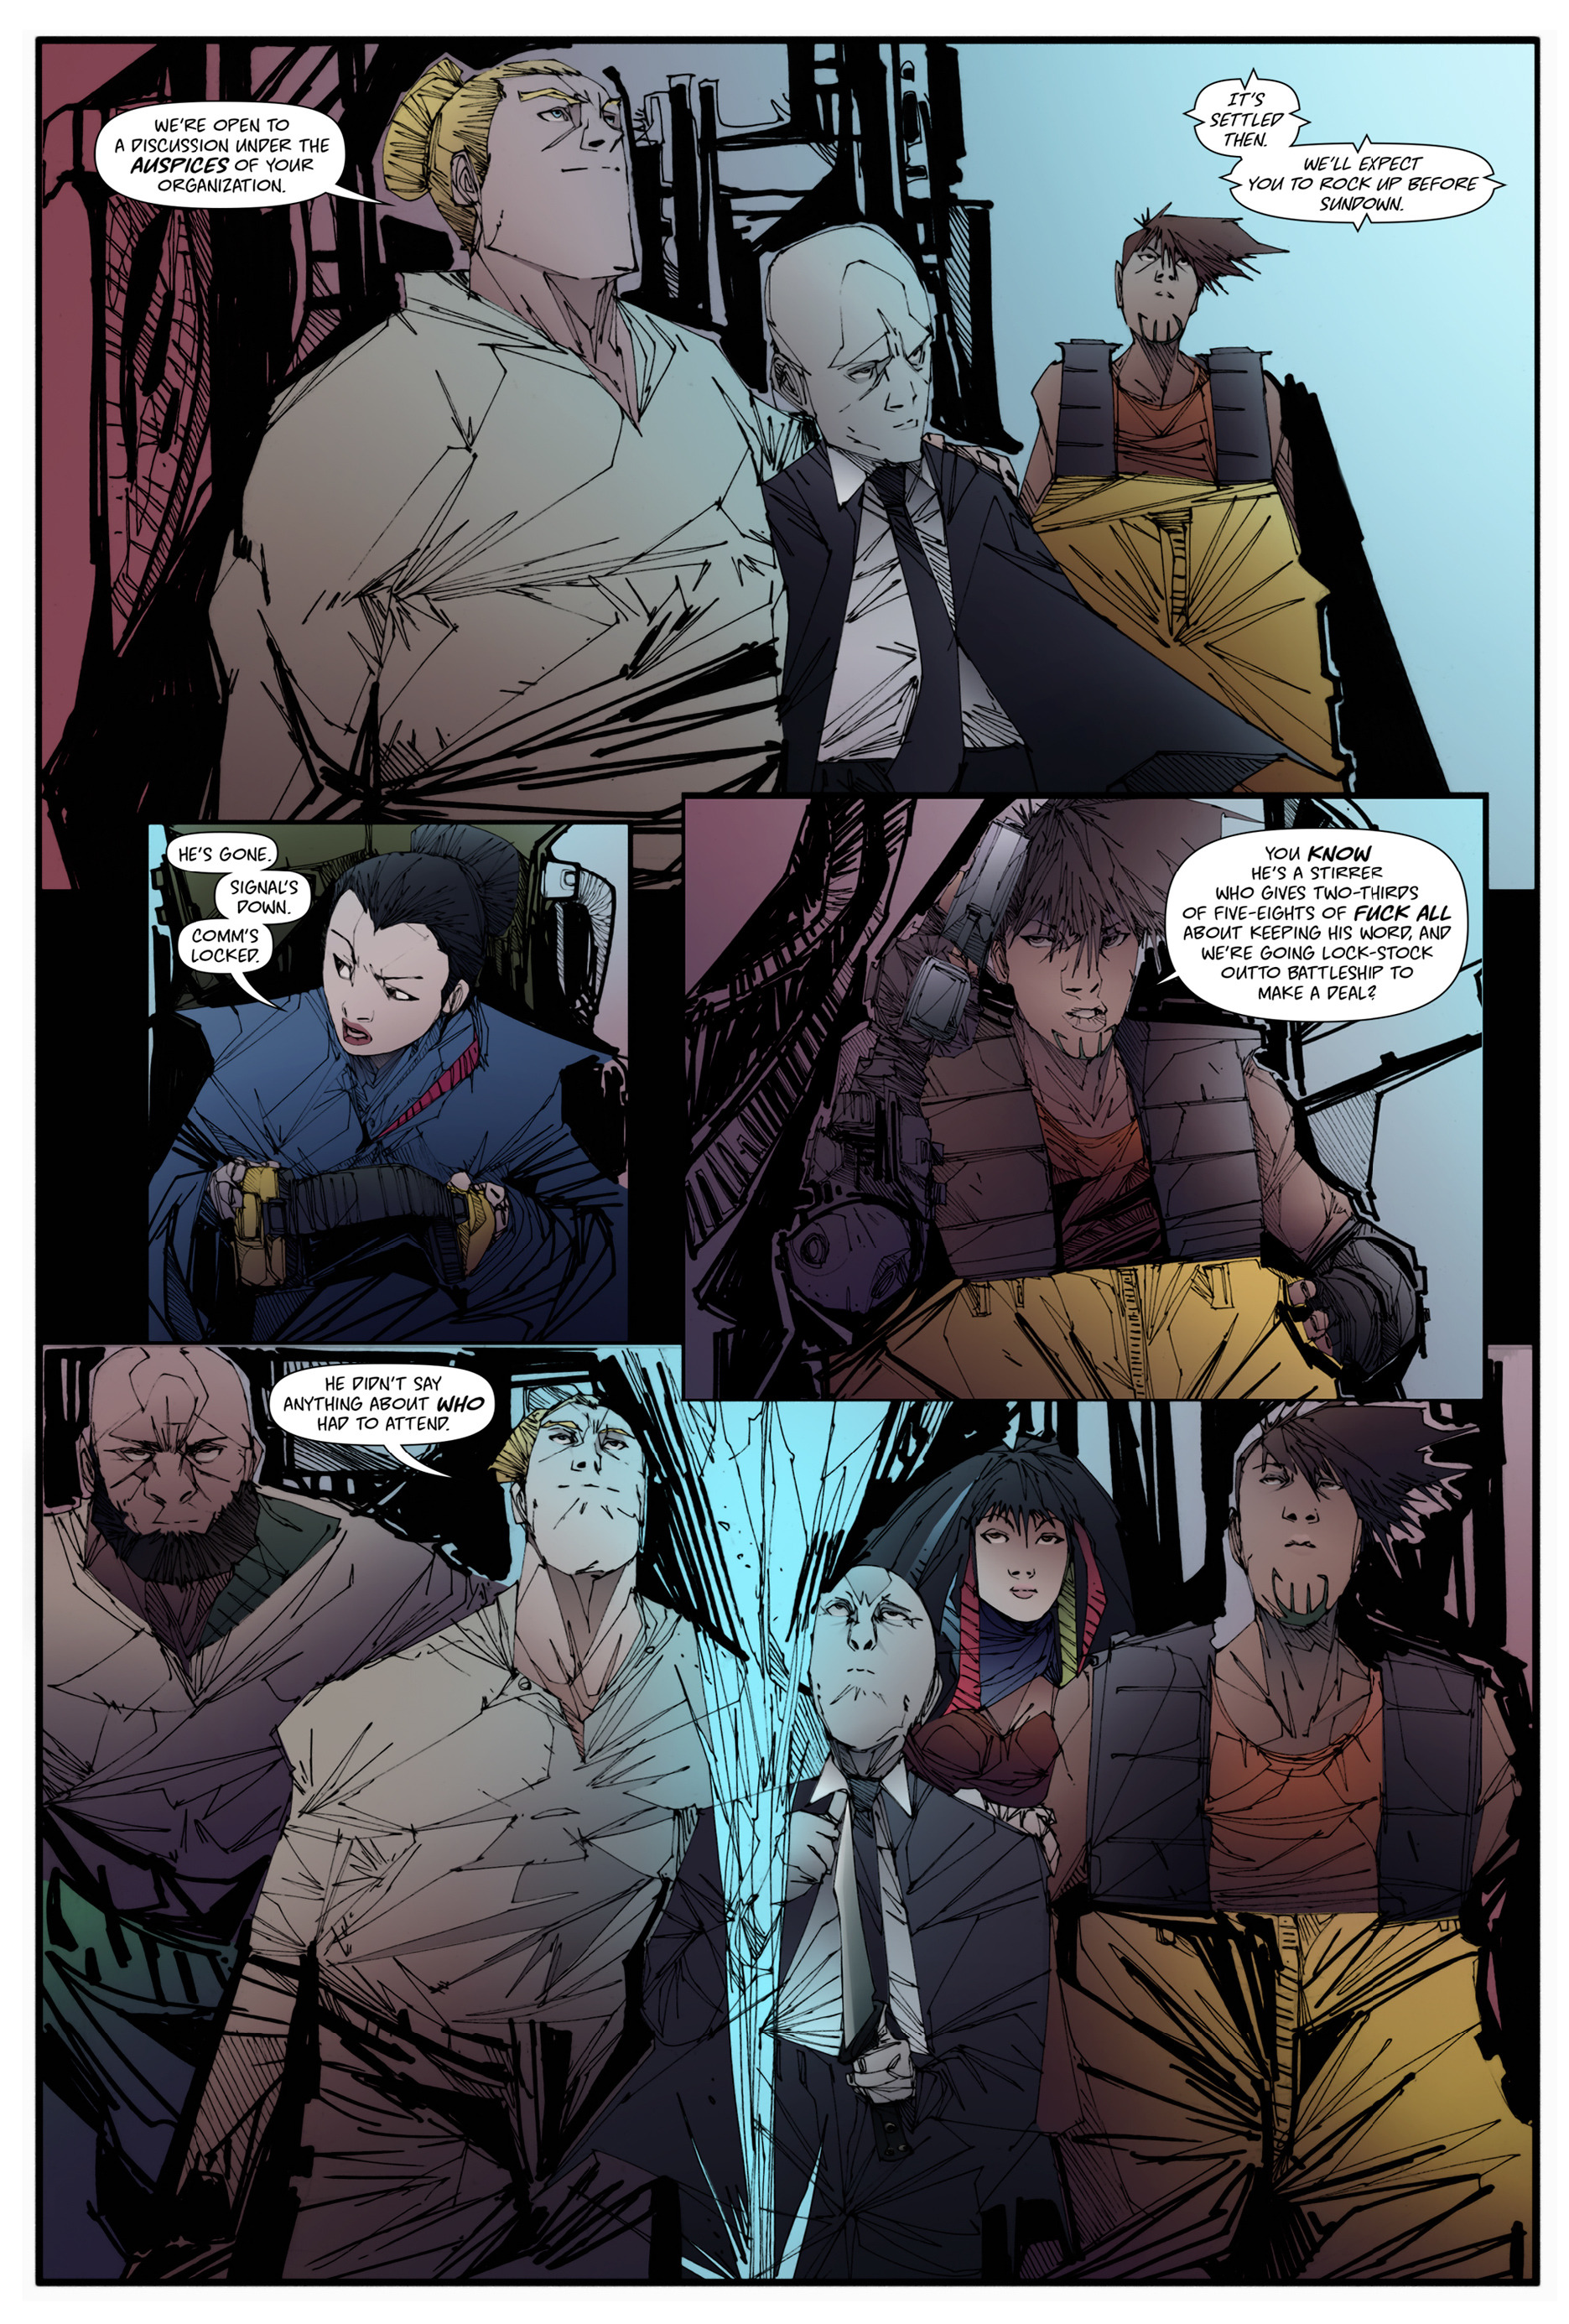 Read online Scrimshaw comic -  Issue #2 - 18